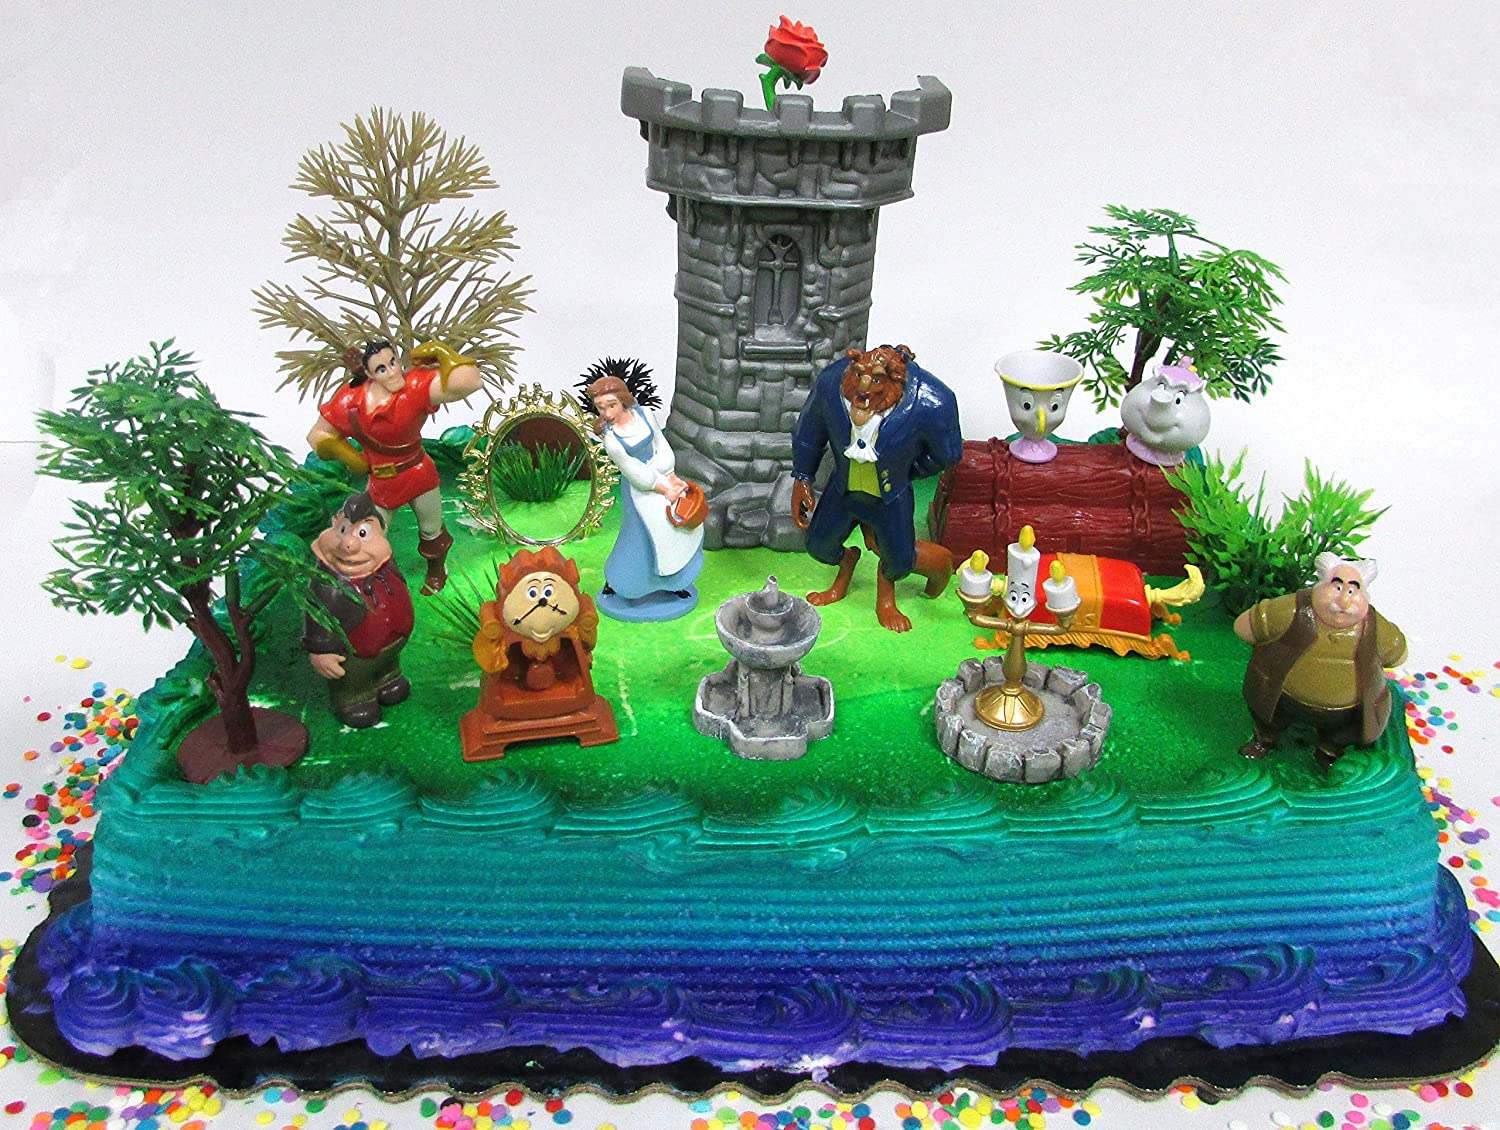 Cake Toppers Beauty and The Beast Birthday Set Featuring Figures and Decorative Themed Accessories